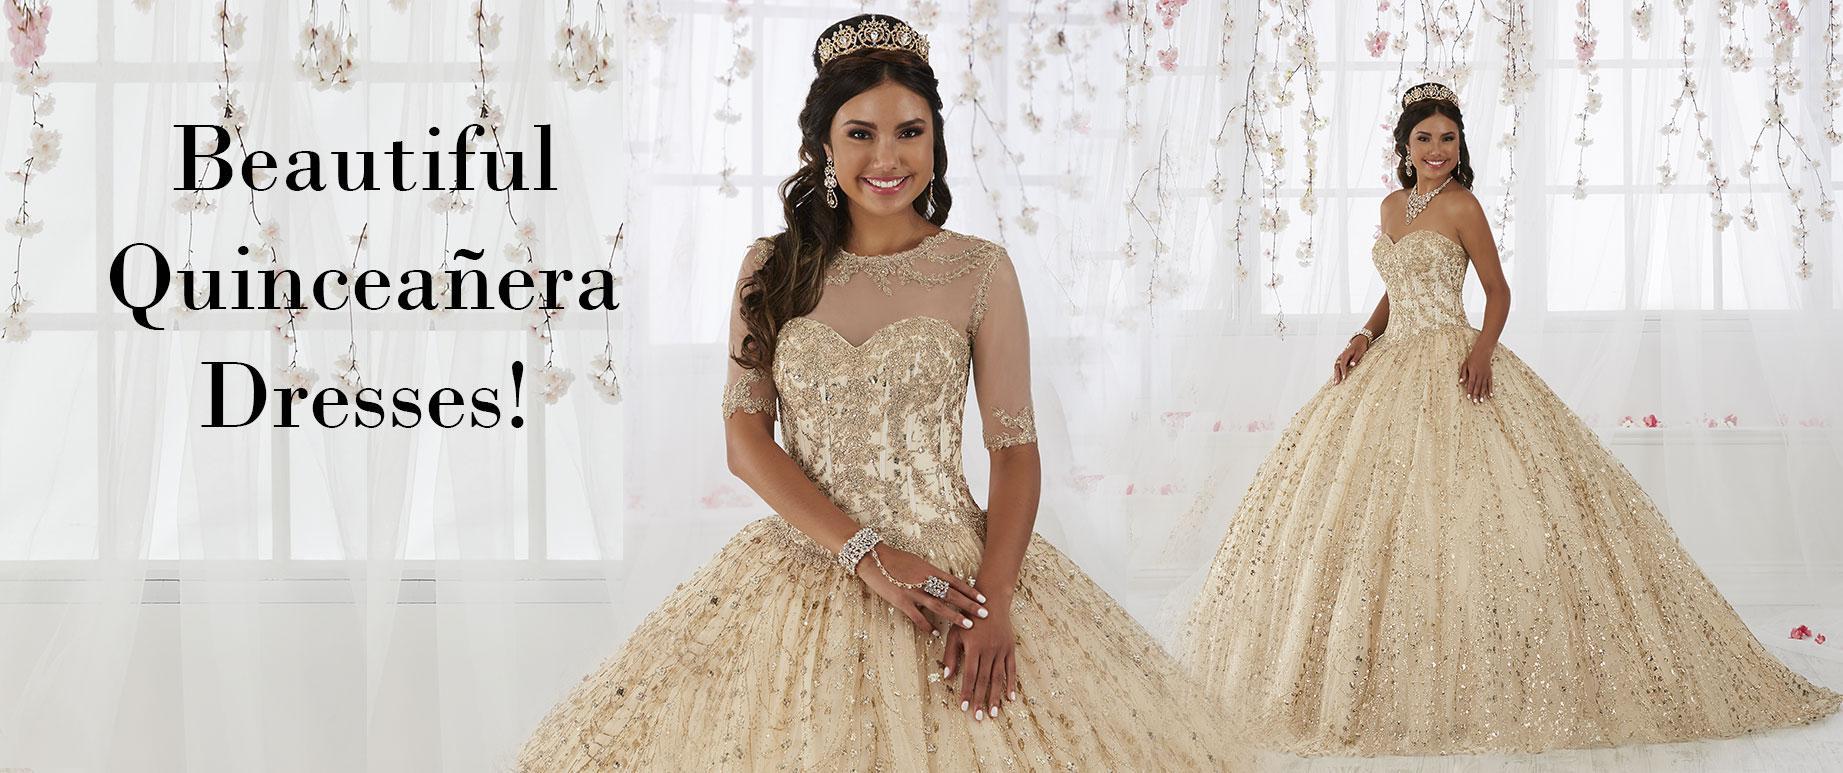 e1365e3177c1 Quinceanera Dresses, Decorations, Favors, and Accessories at ...